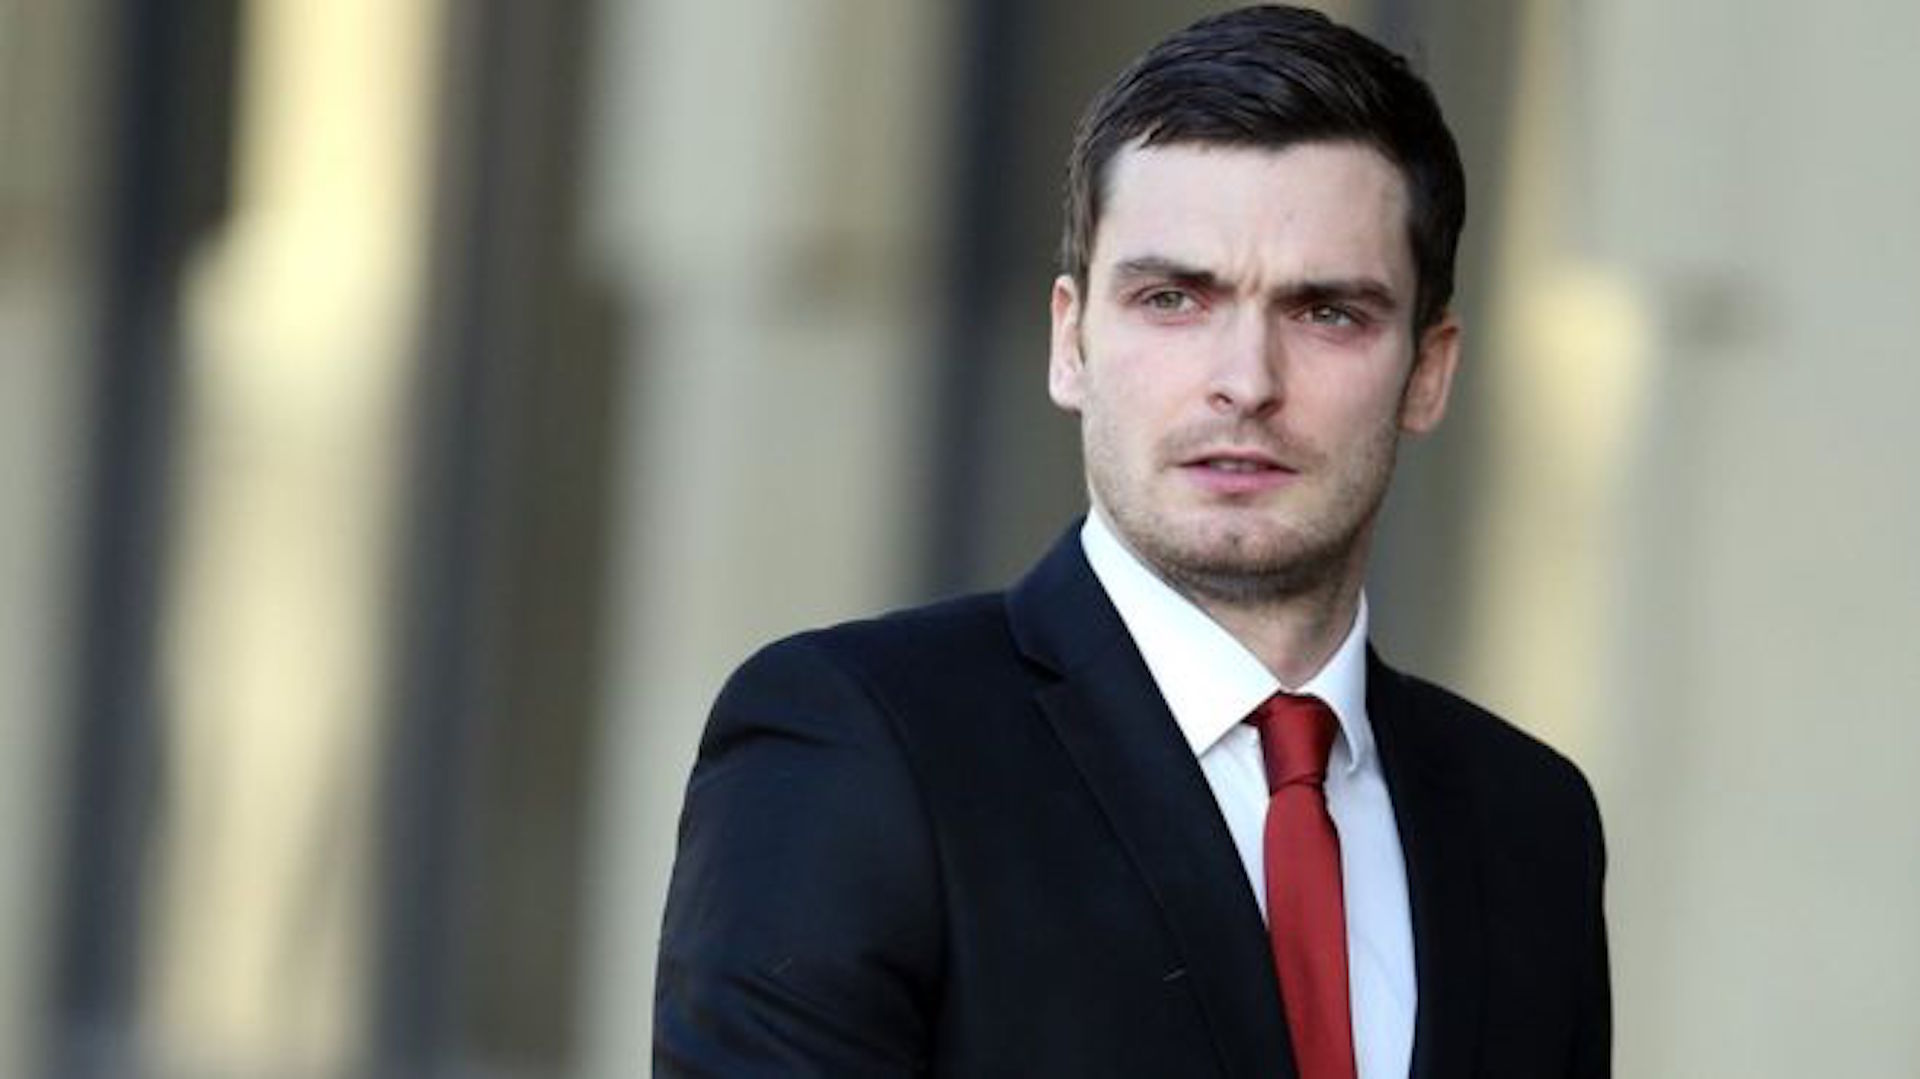 Sex offender Adam Johnson gets jail visit from his golf pro